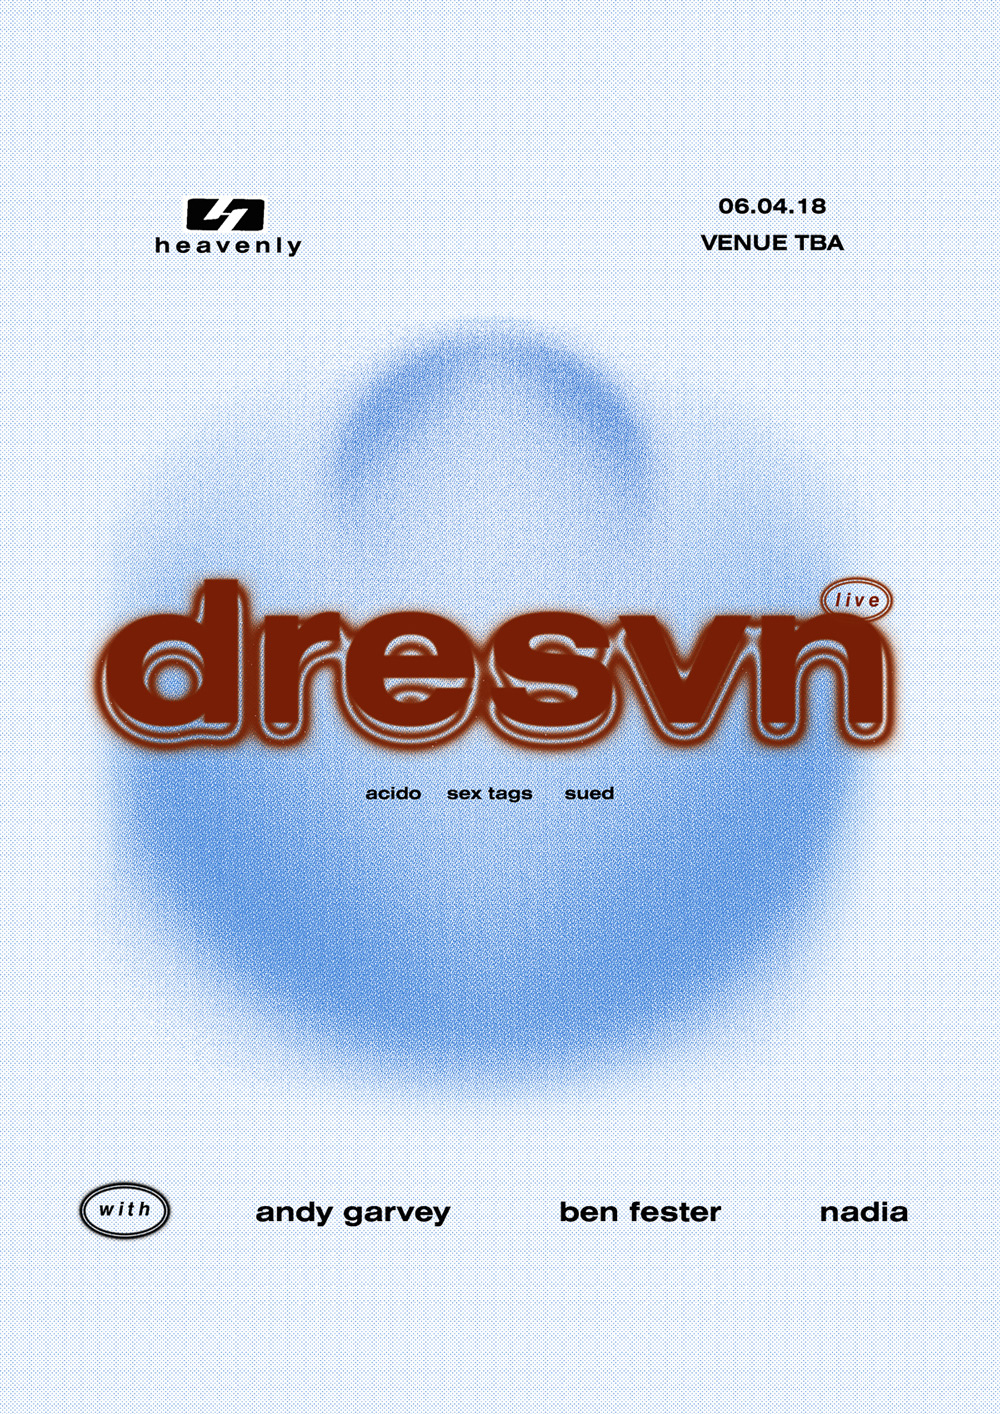 Heavenly-Dresvn1small.jpg